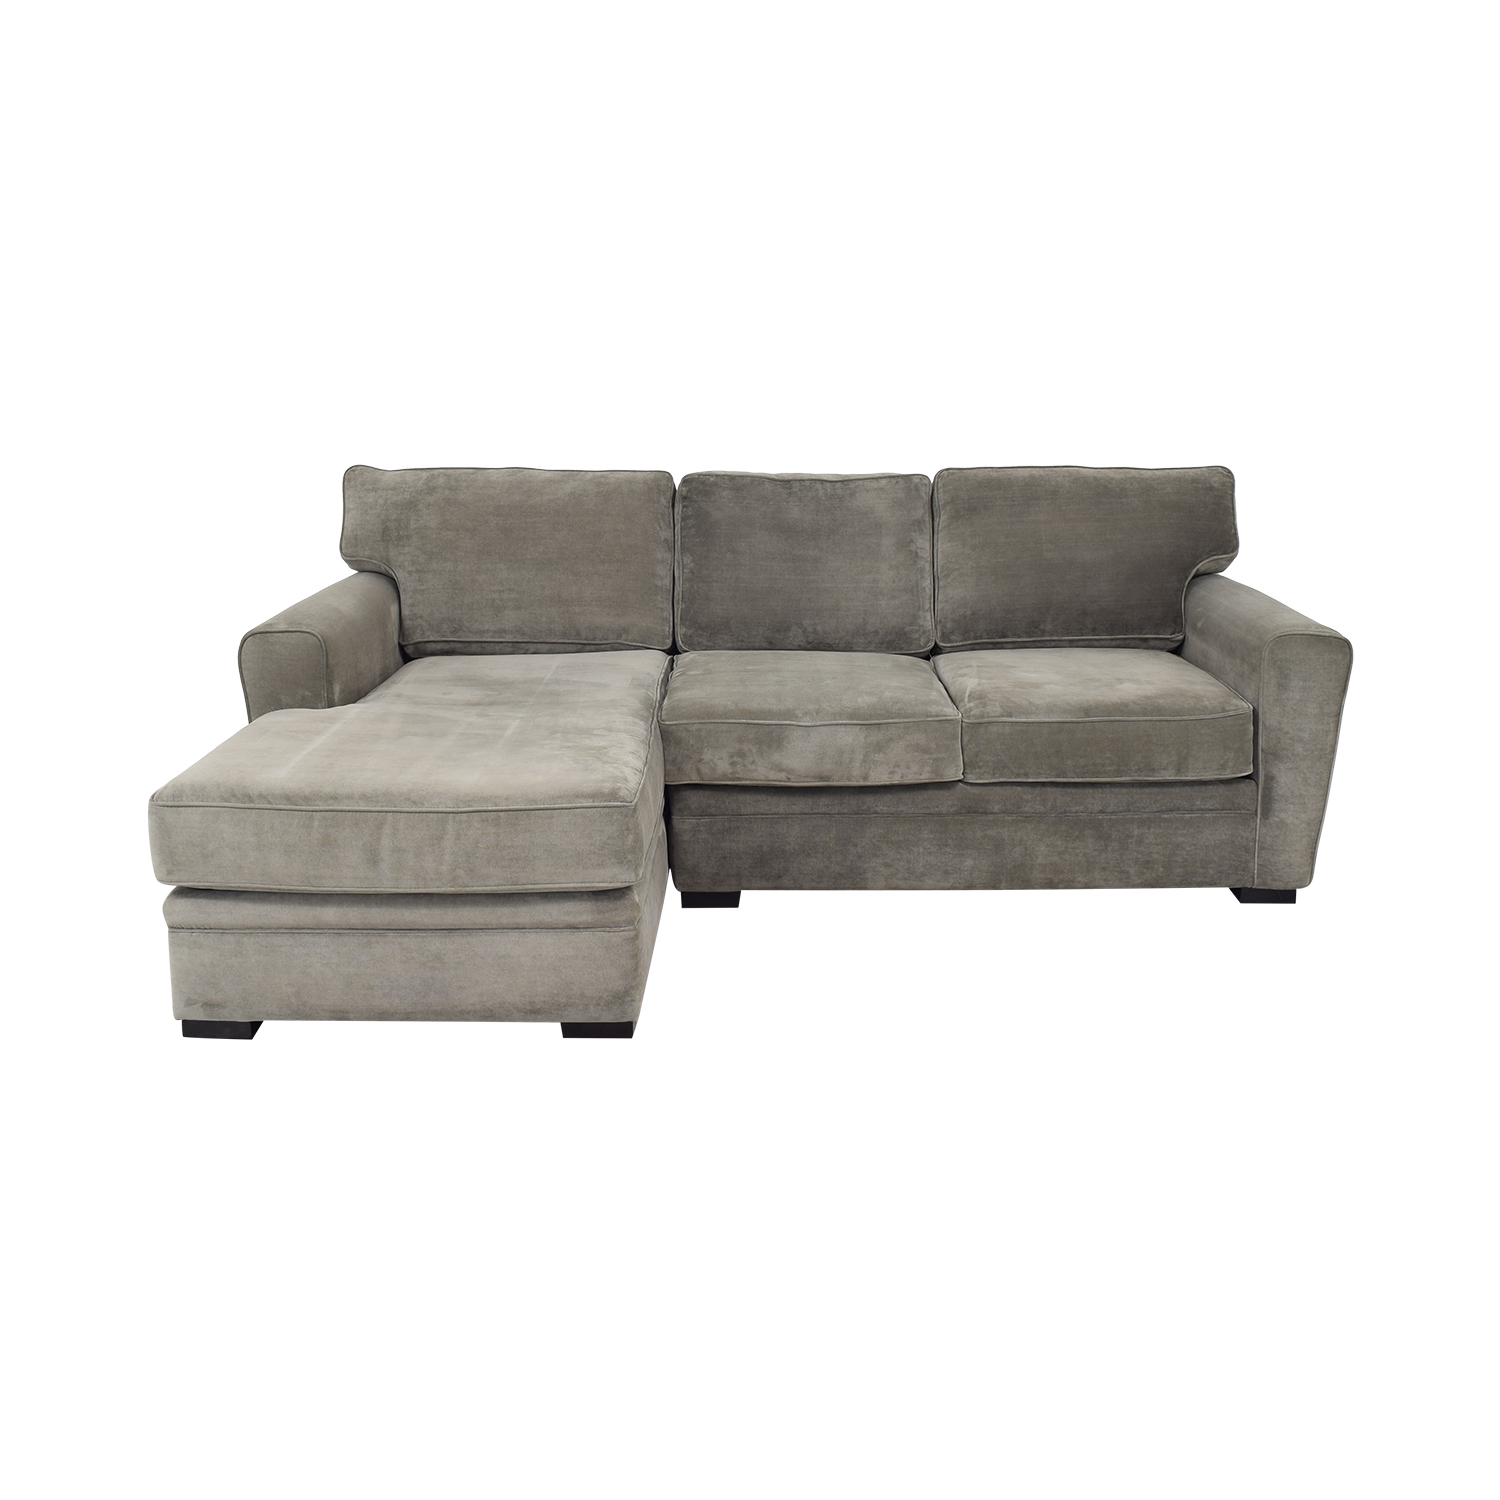 Raymour & Flanigan Raymour & Flanigan Artemis II Microfiber Sectional Sofa coupon